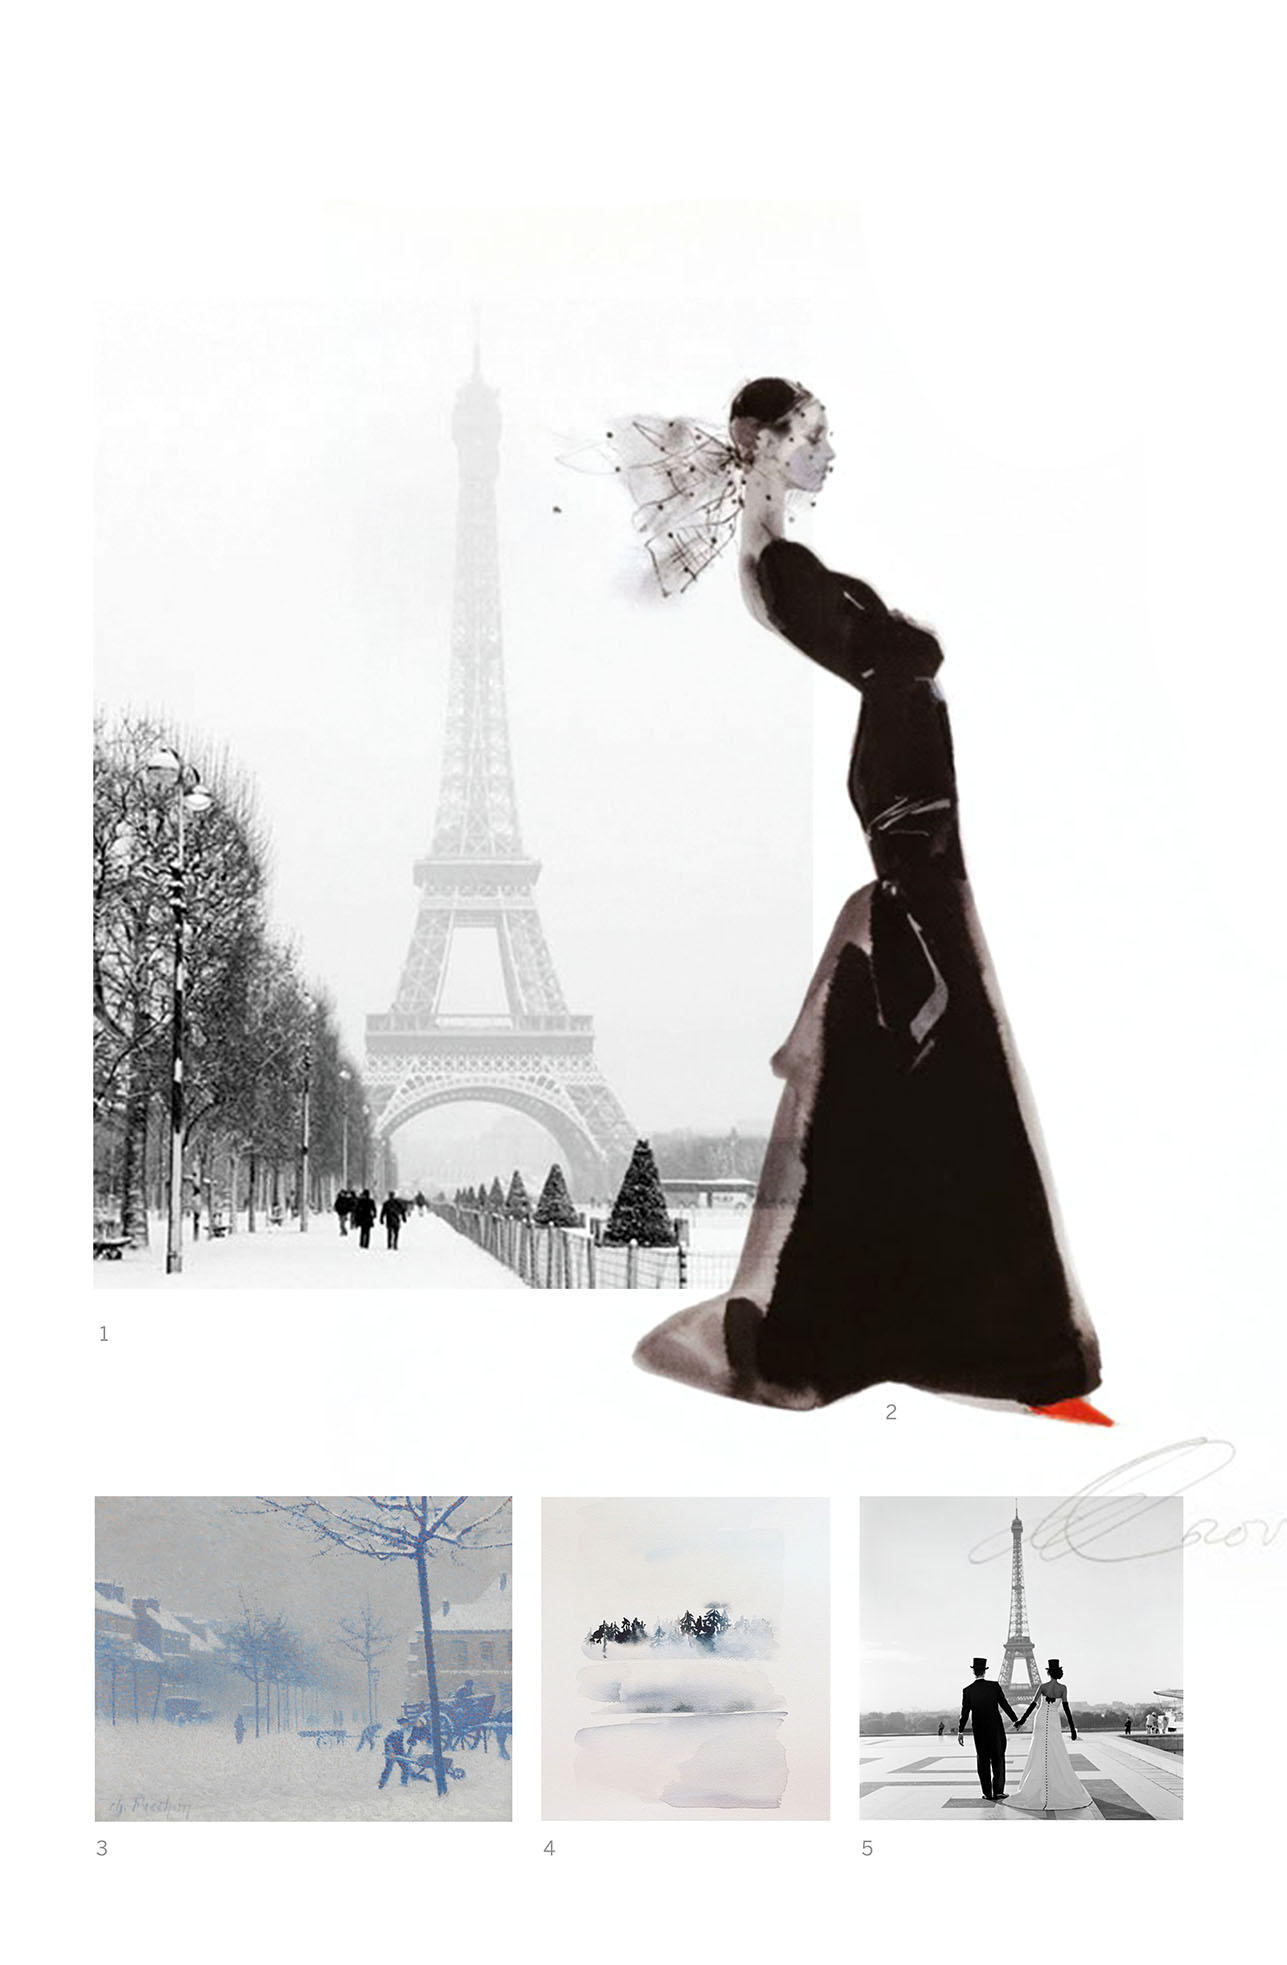 """Mood board for the Wedding Collection """"Paris in the snow"""" by Type and Graphics Lab. Image references: 1. Pinterest, original source unknown. 2.  David Downton 3. """"Rouen, place Cauchoise sous la neige,"""" Charles Frechon. 4.  Yao Cheng .5. Pinterest, original source unknown."""